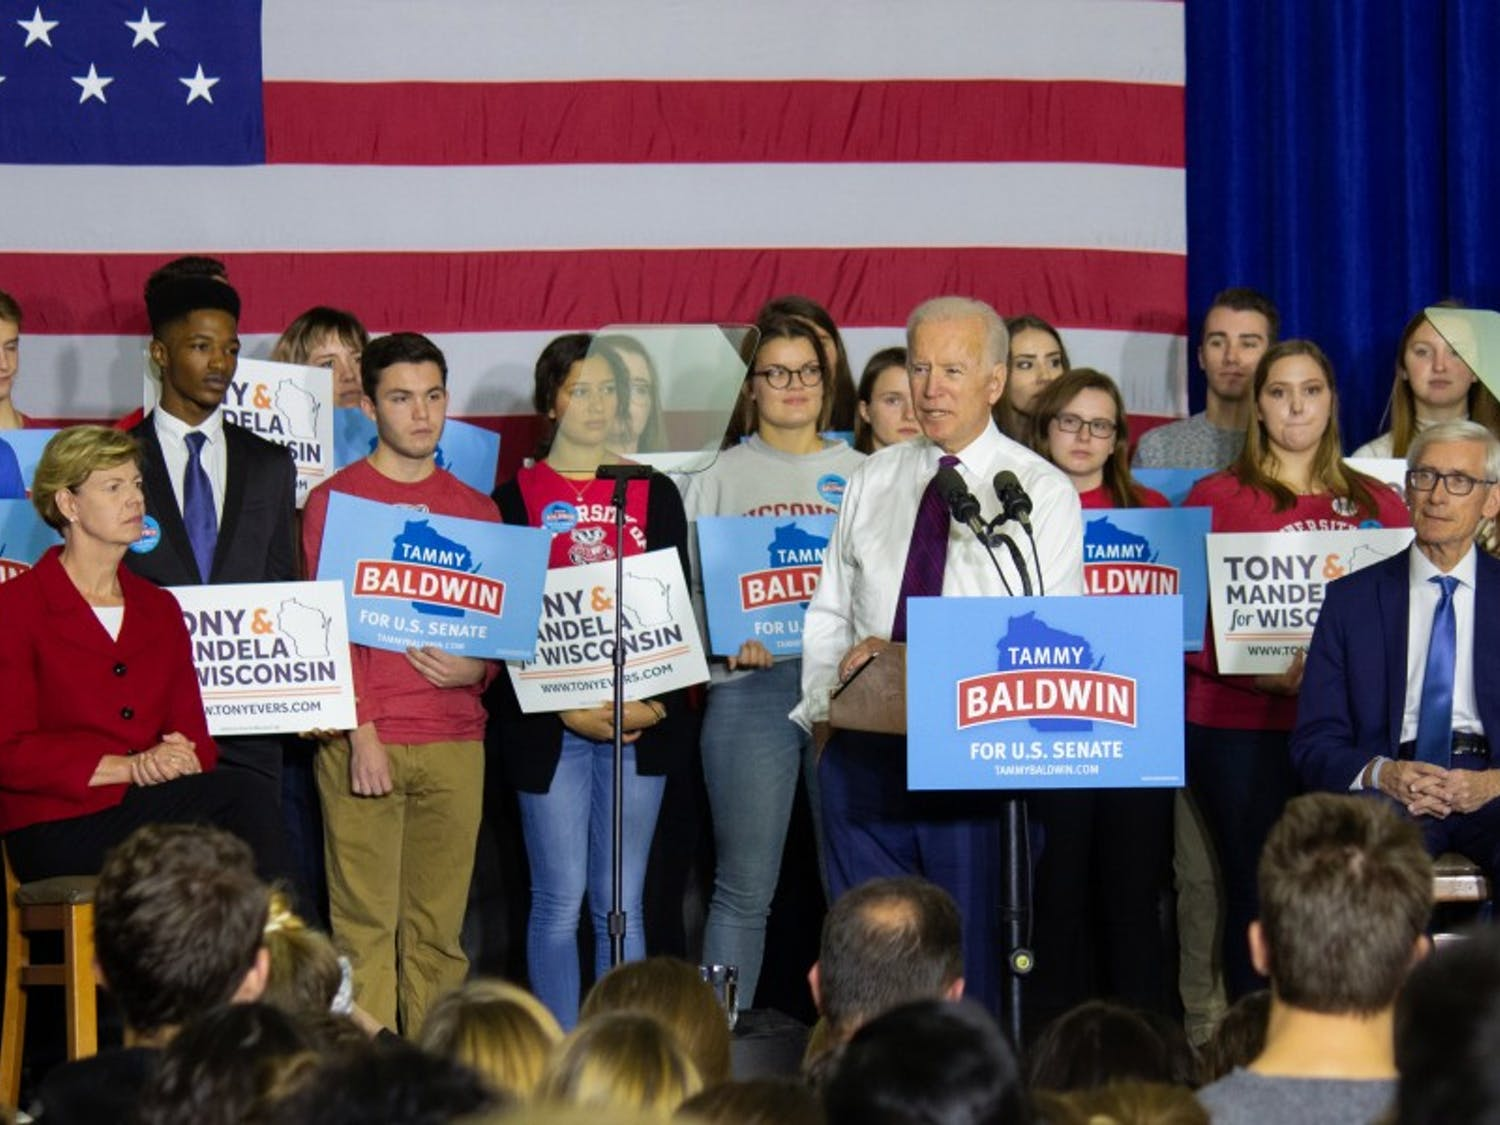 As high profile names flood Wisconsin leading up to next week's midterm election, former Vice President Joe Biden spoke in Madison to encourage voter turnout.